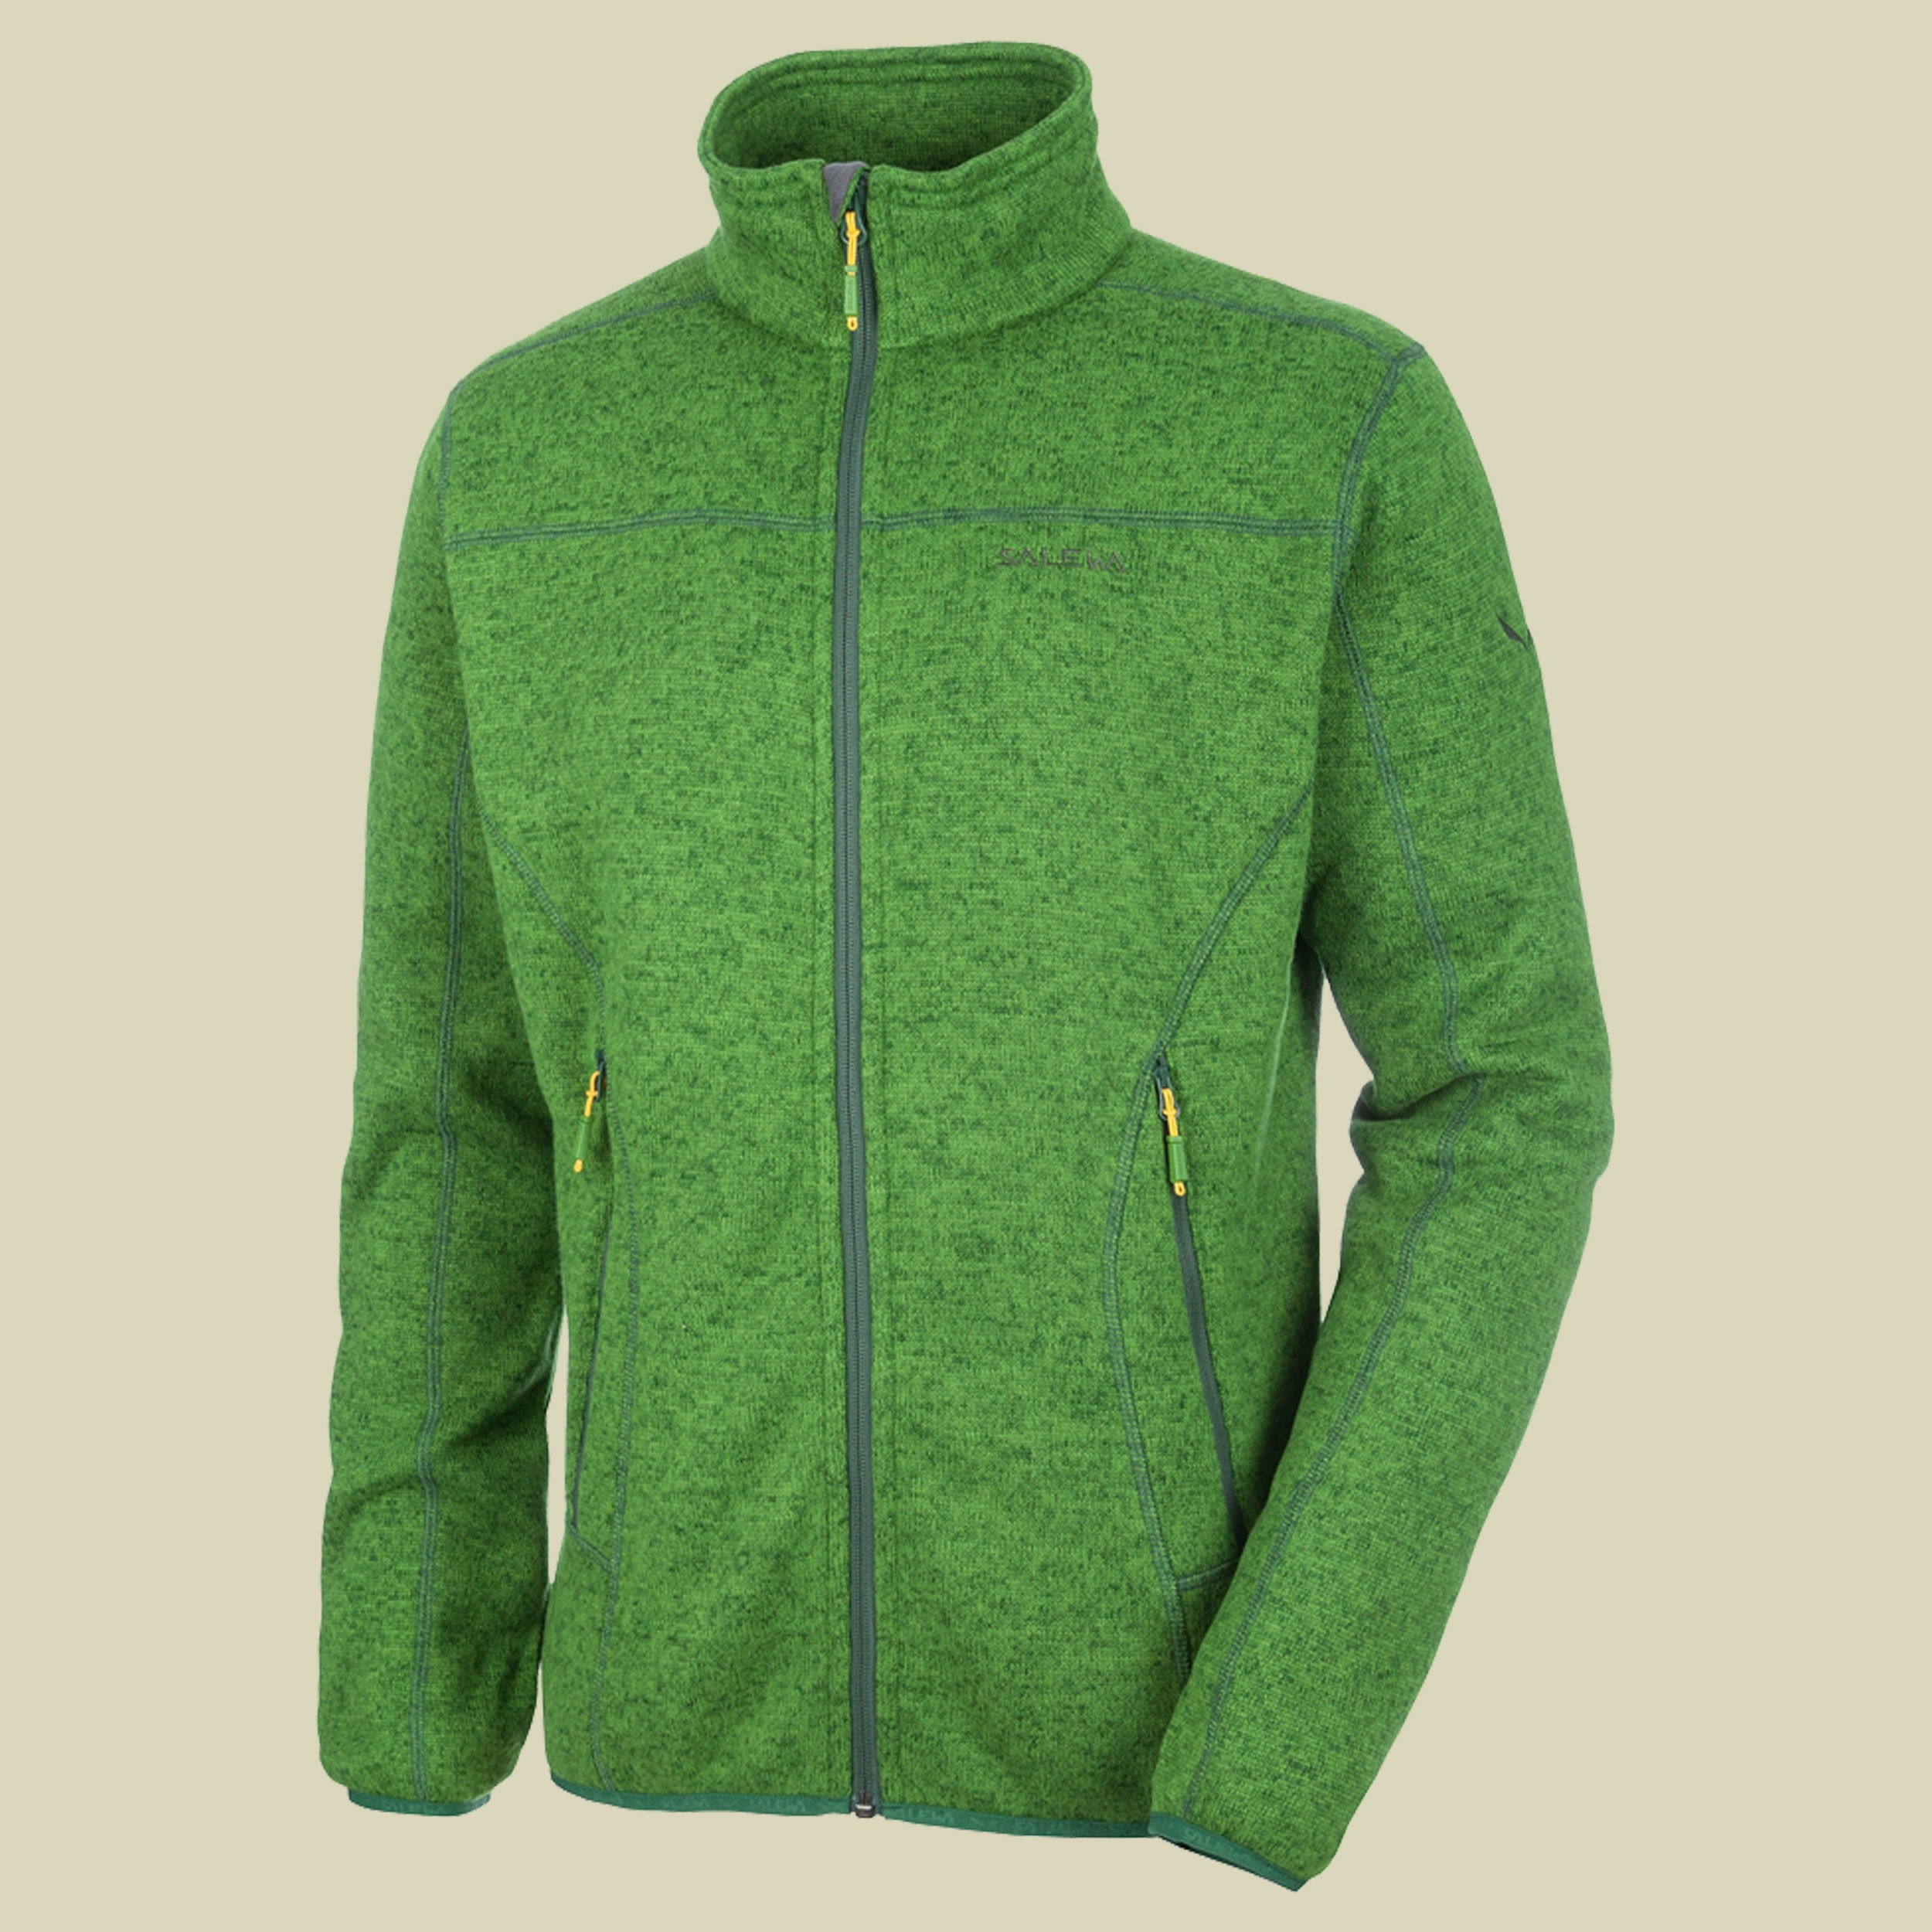 Kitz 3 PL Full-Zip Men